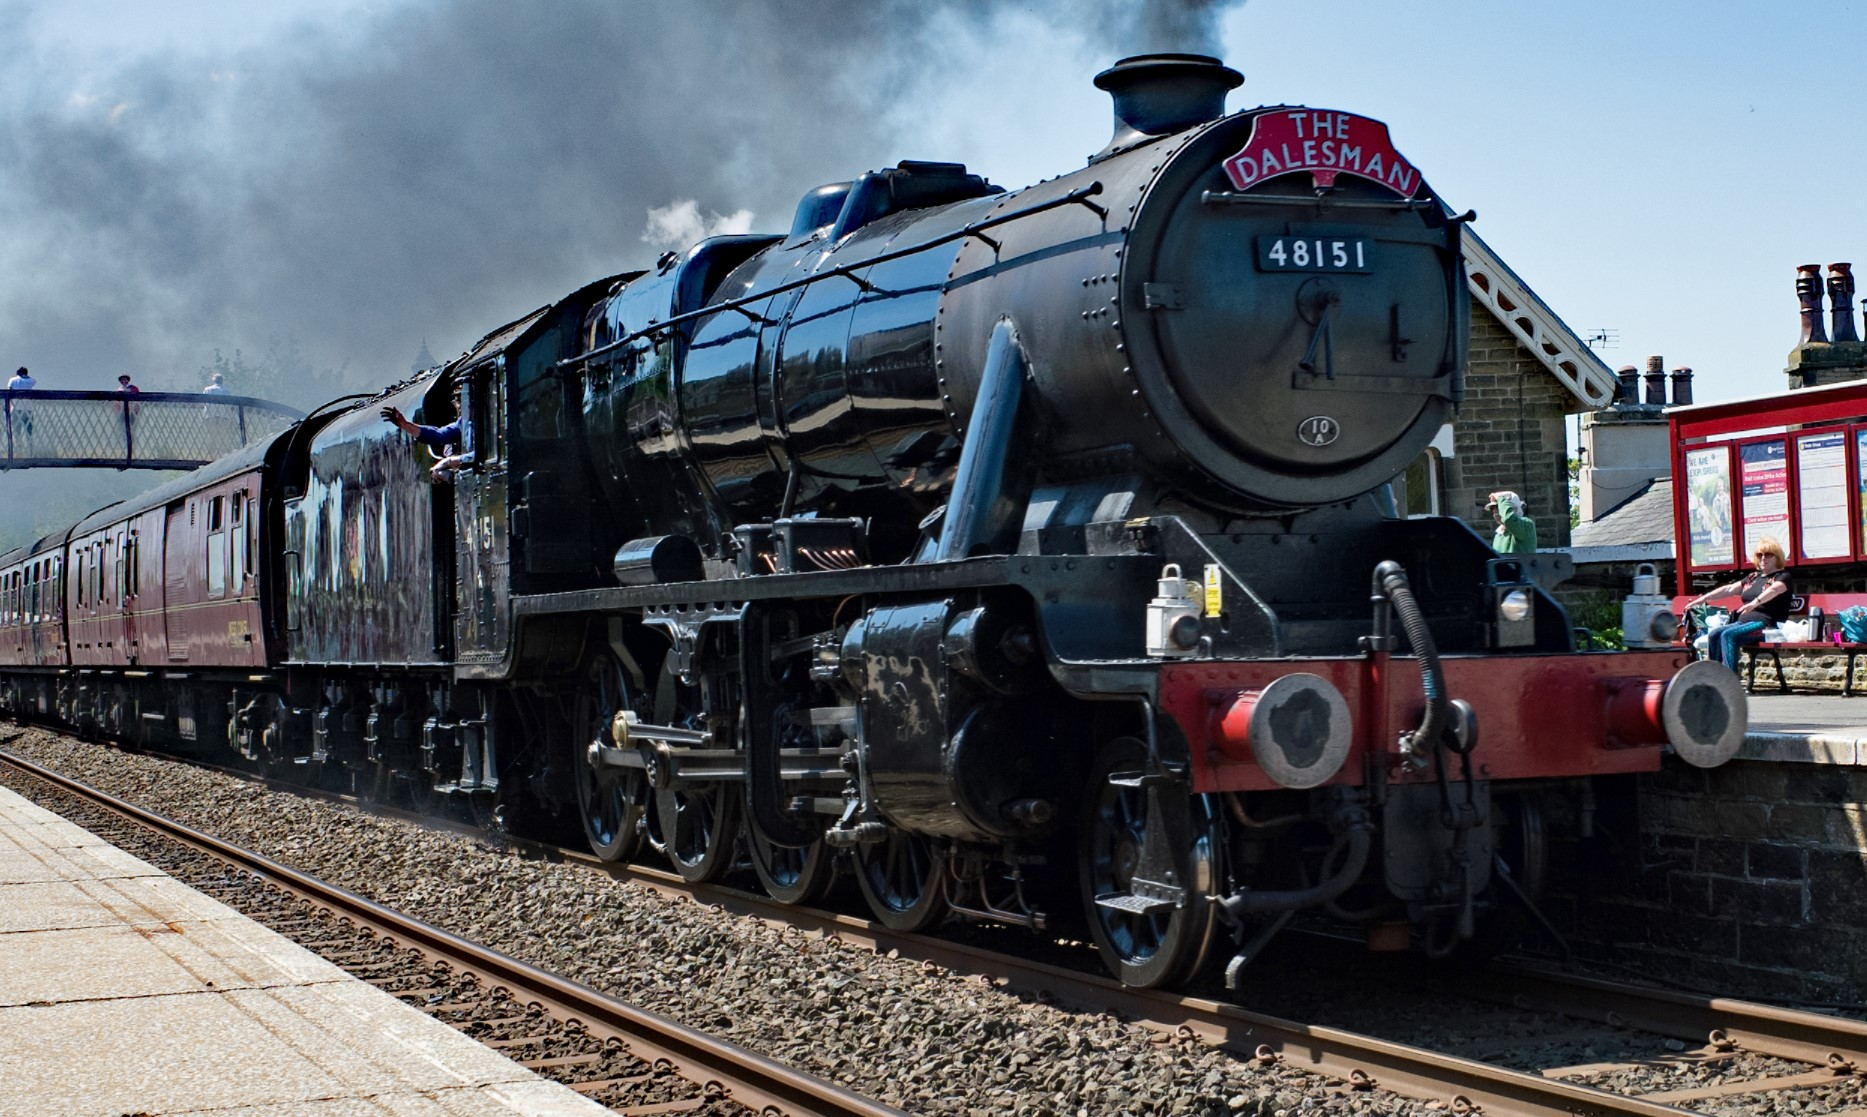 48151 at Settle in May 2018. ©Andrew